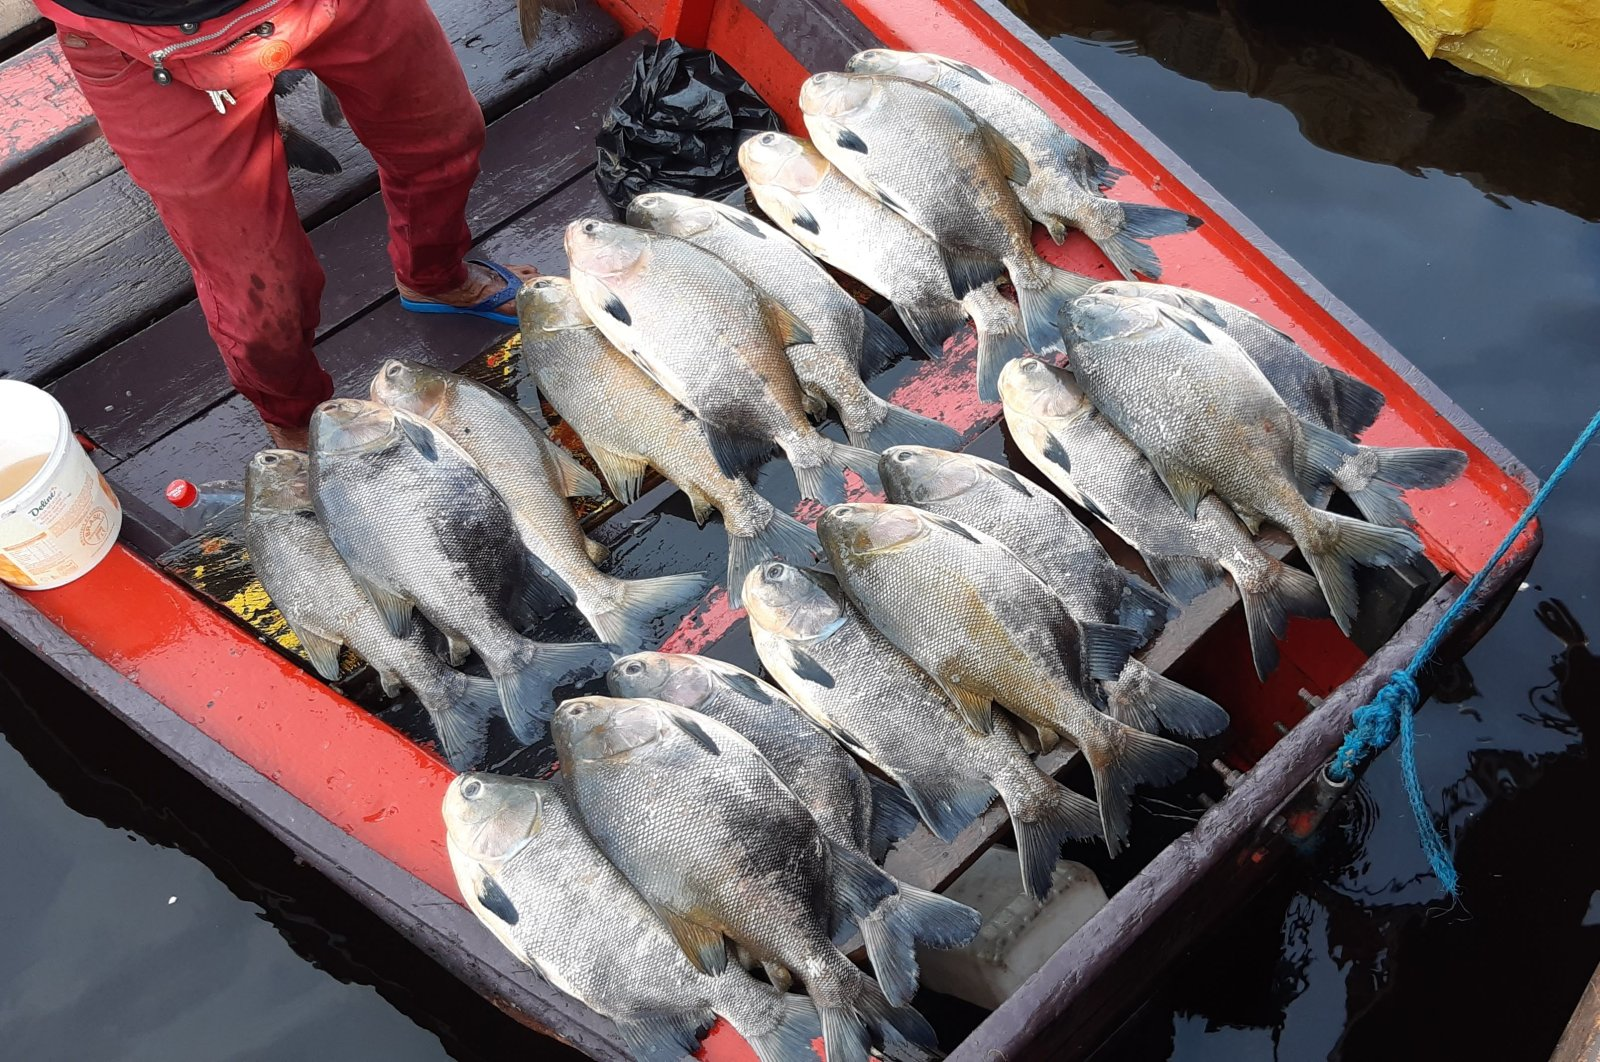 Fish on display at the edge of the city of Manaus, Brazil, caught in the Amazon River, July 25, 2020. (Shutterstock Photo)